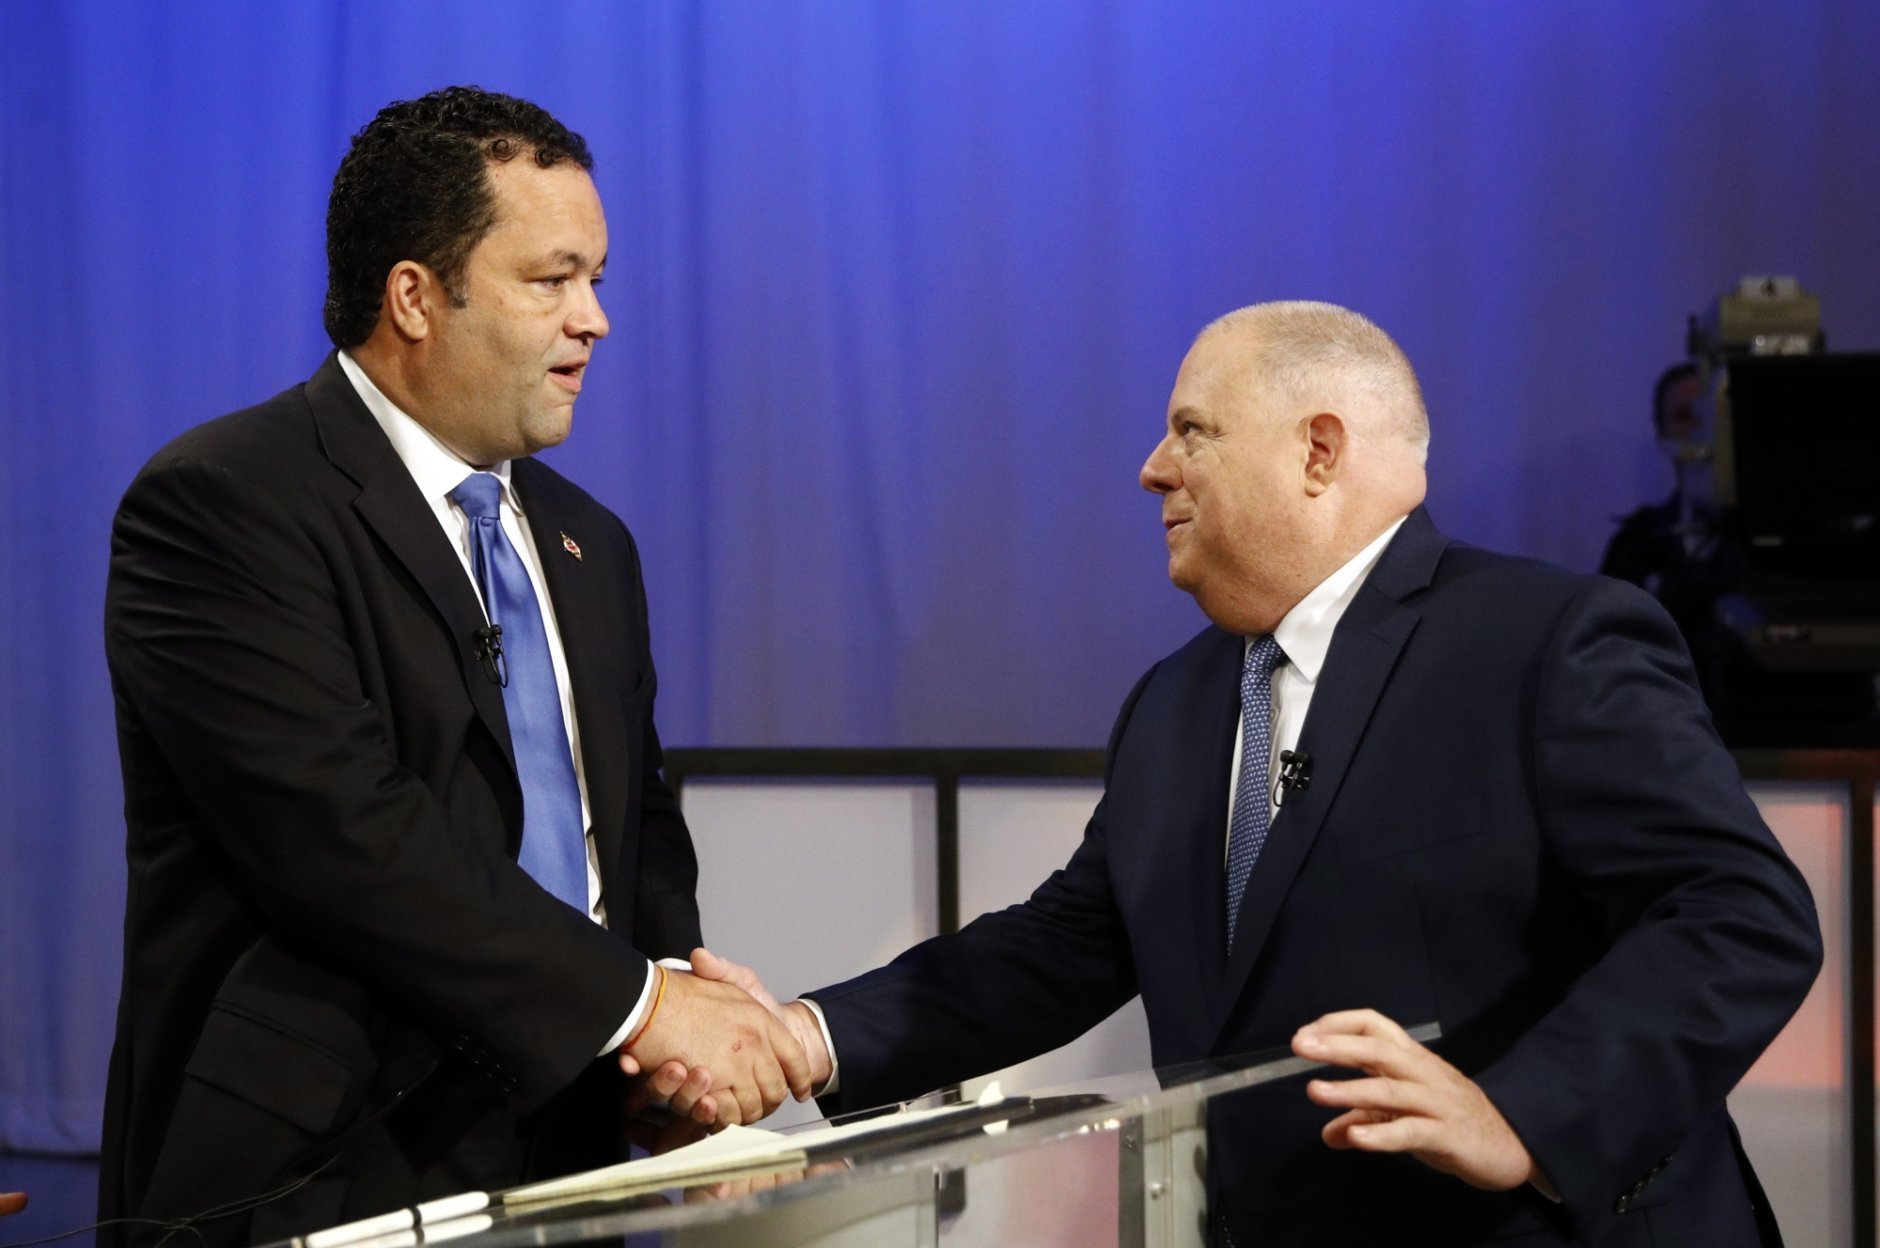 Larry Hogan, Ben Jealous